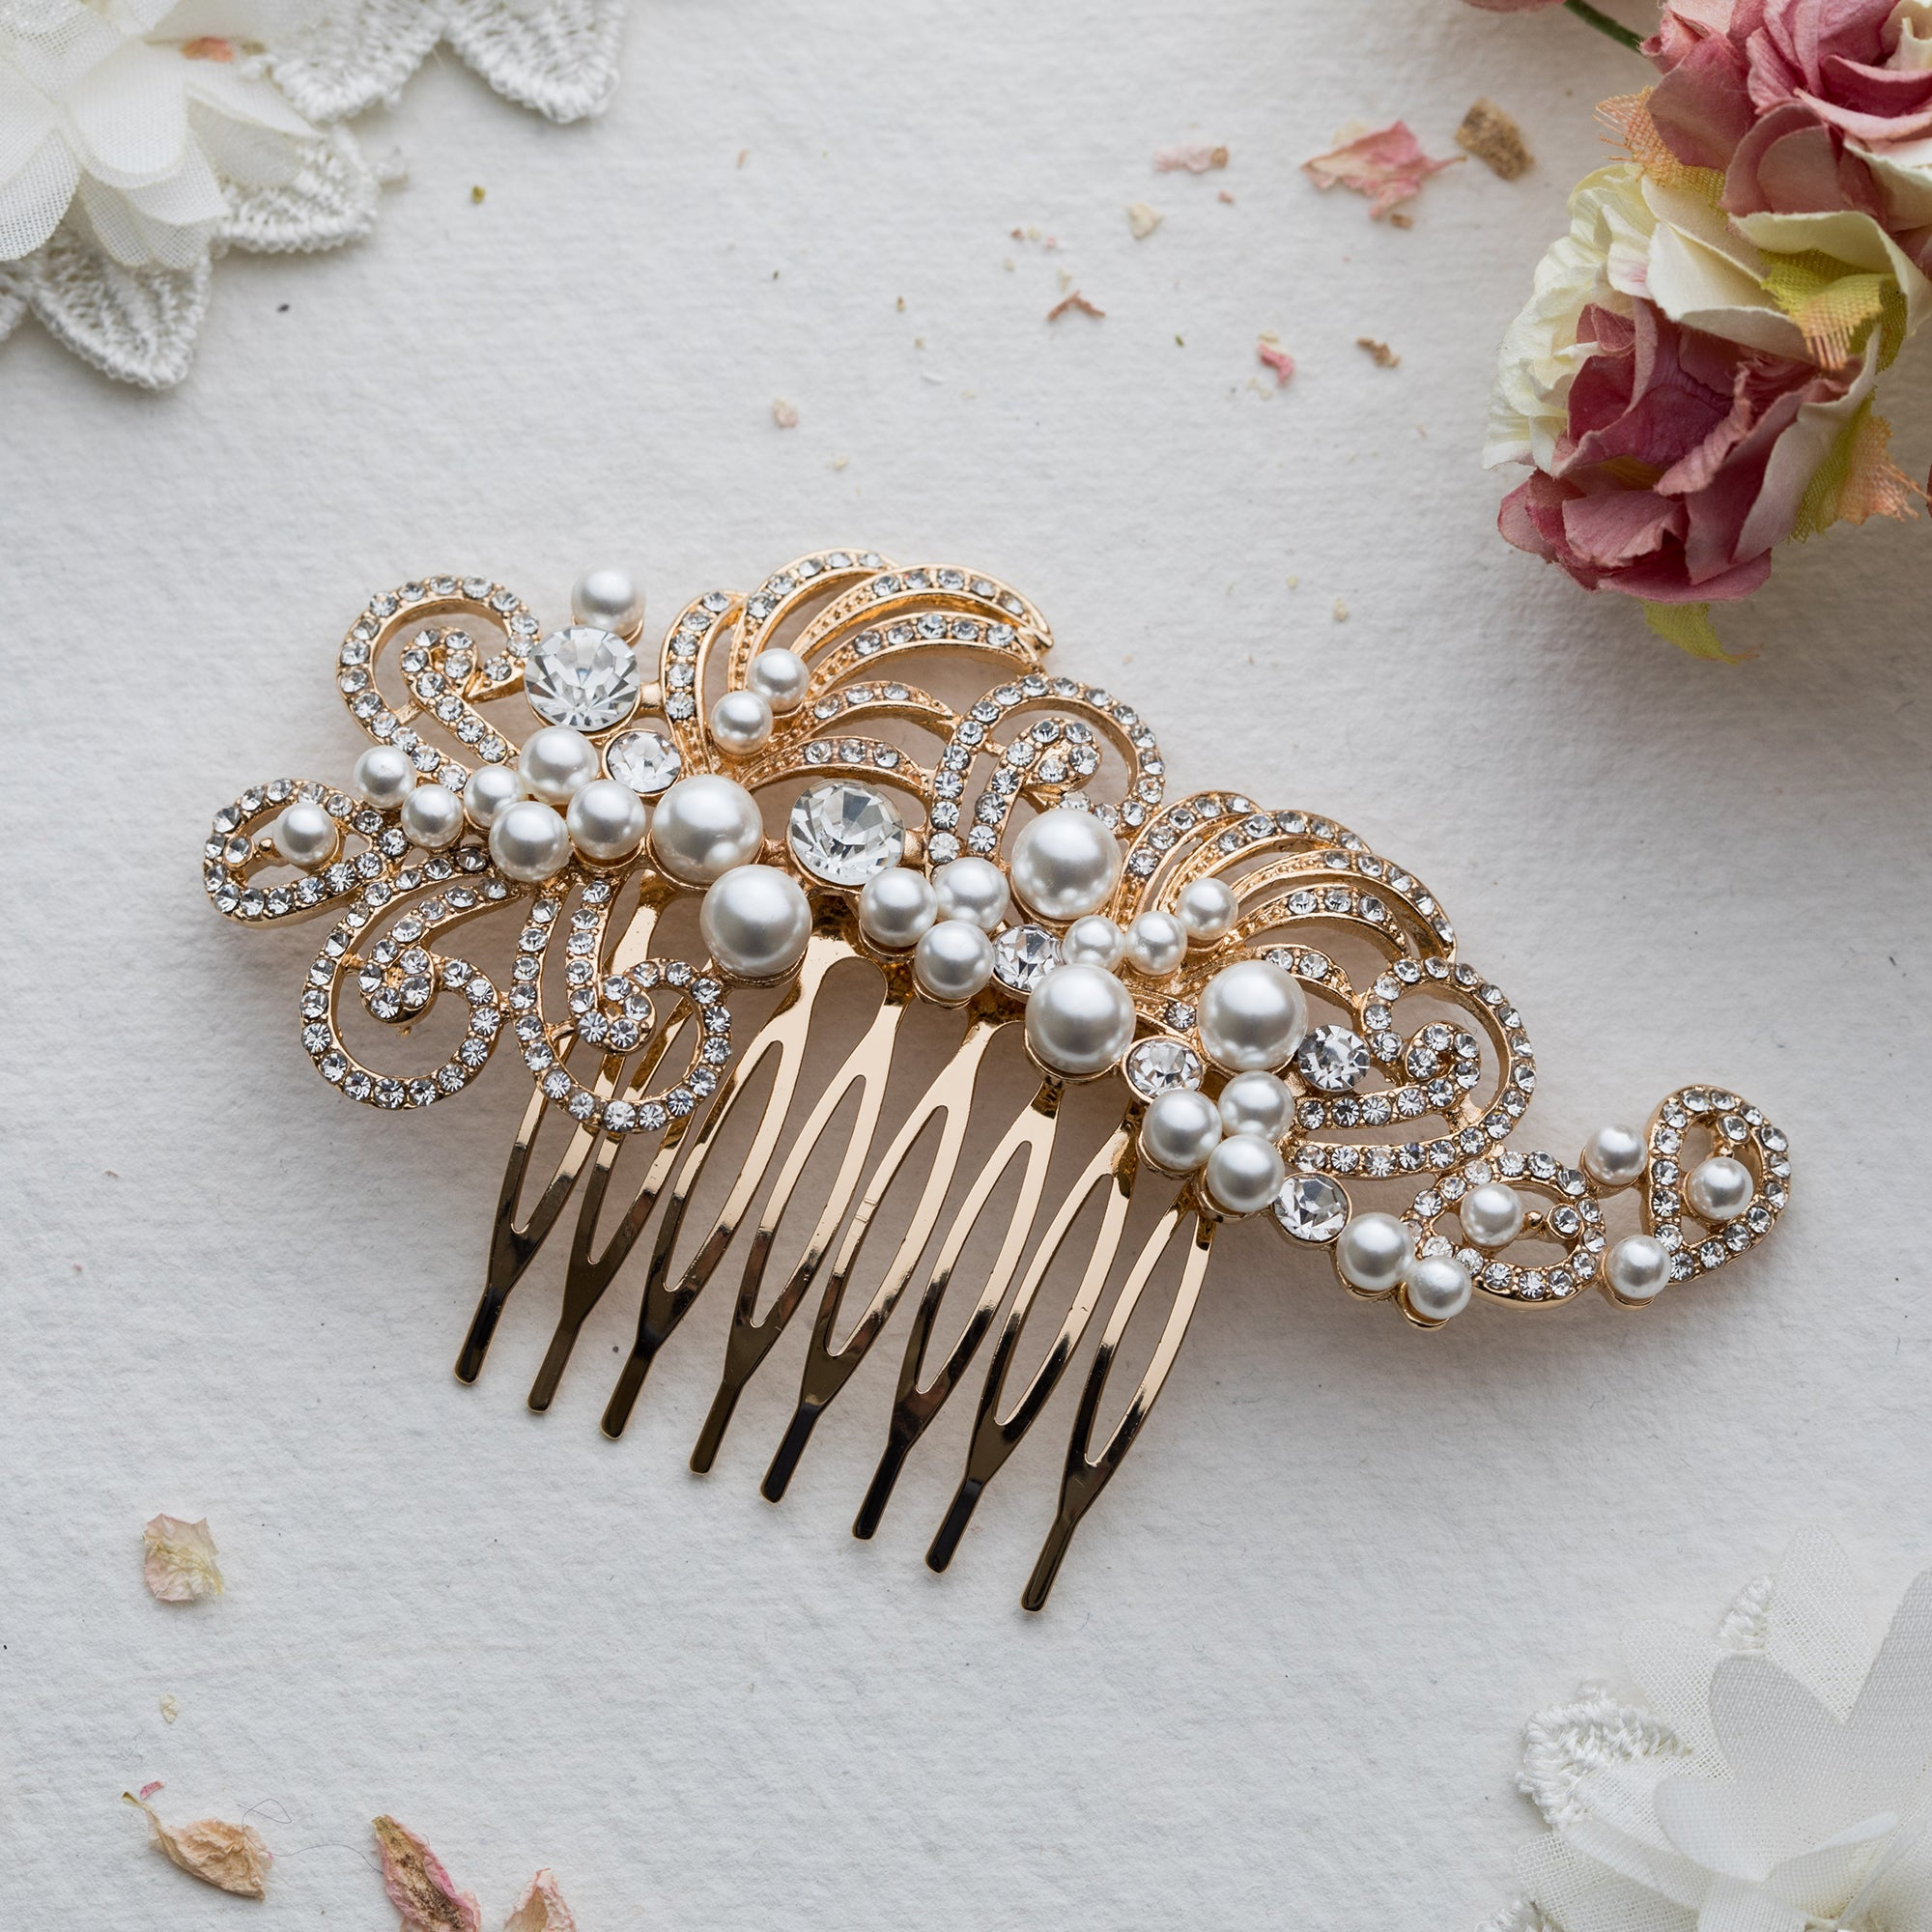 Violeta crystal and pearl silver hair comb